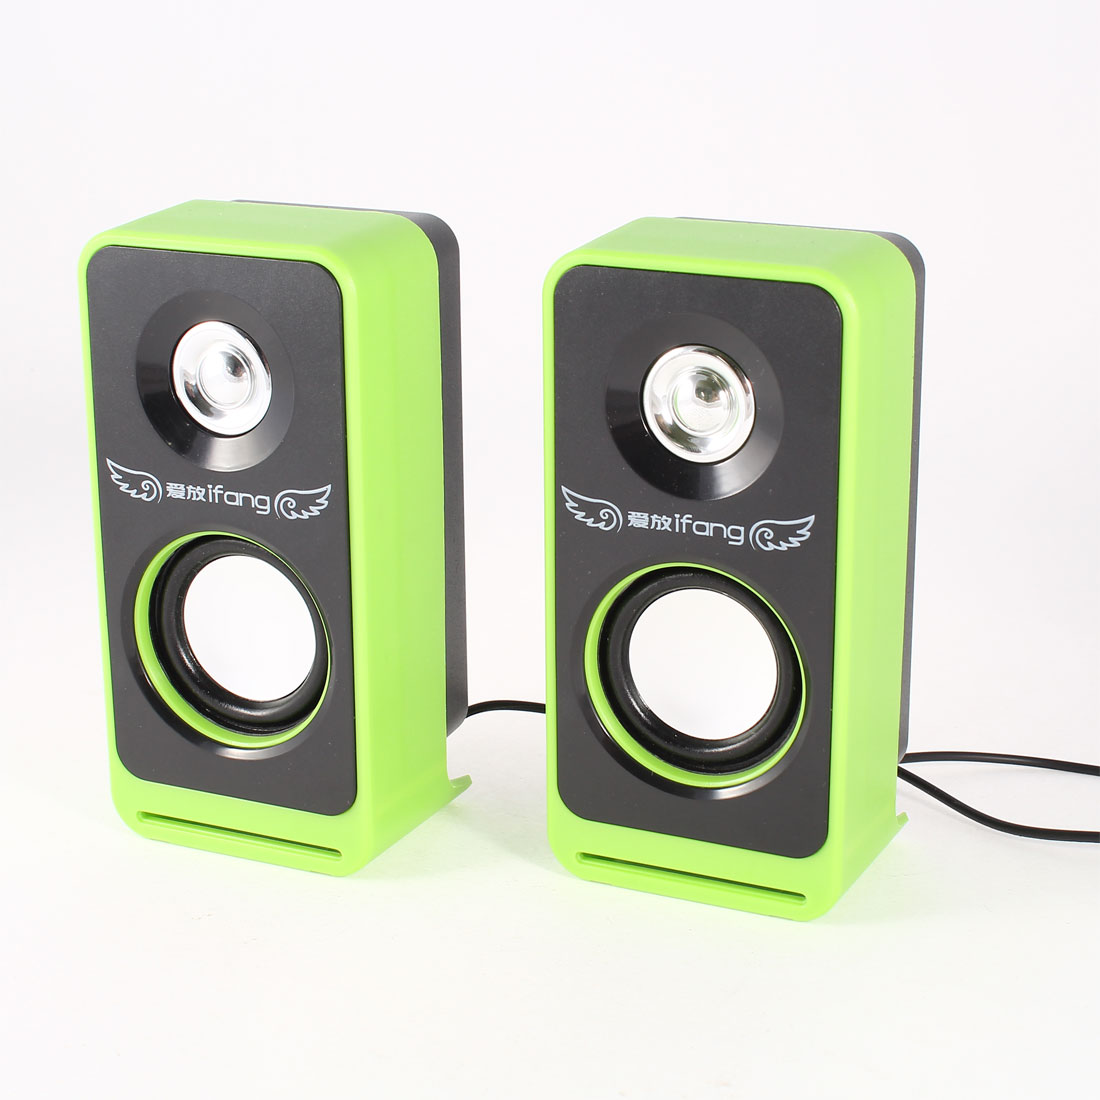 Black Green Rectangle PC Laptop Volume Control USB 2.0 Mini Speaker Box